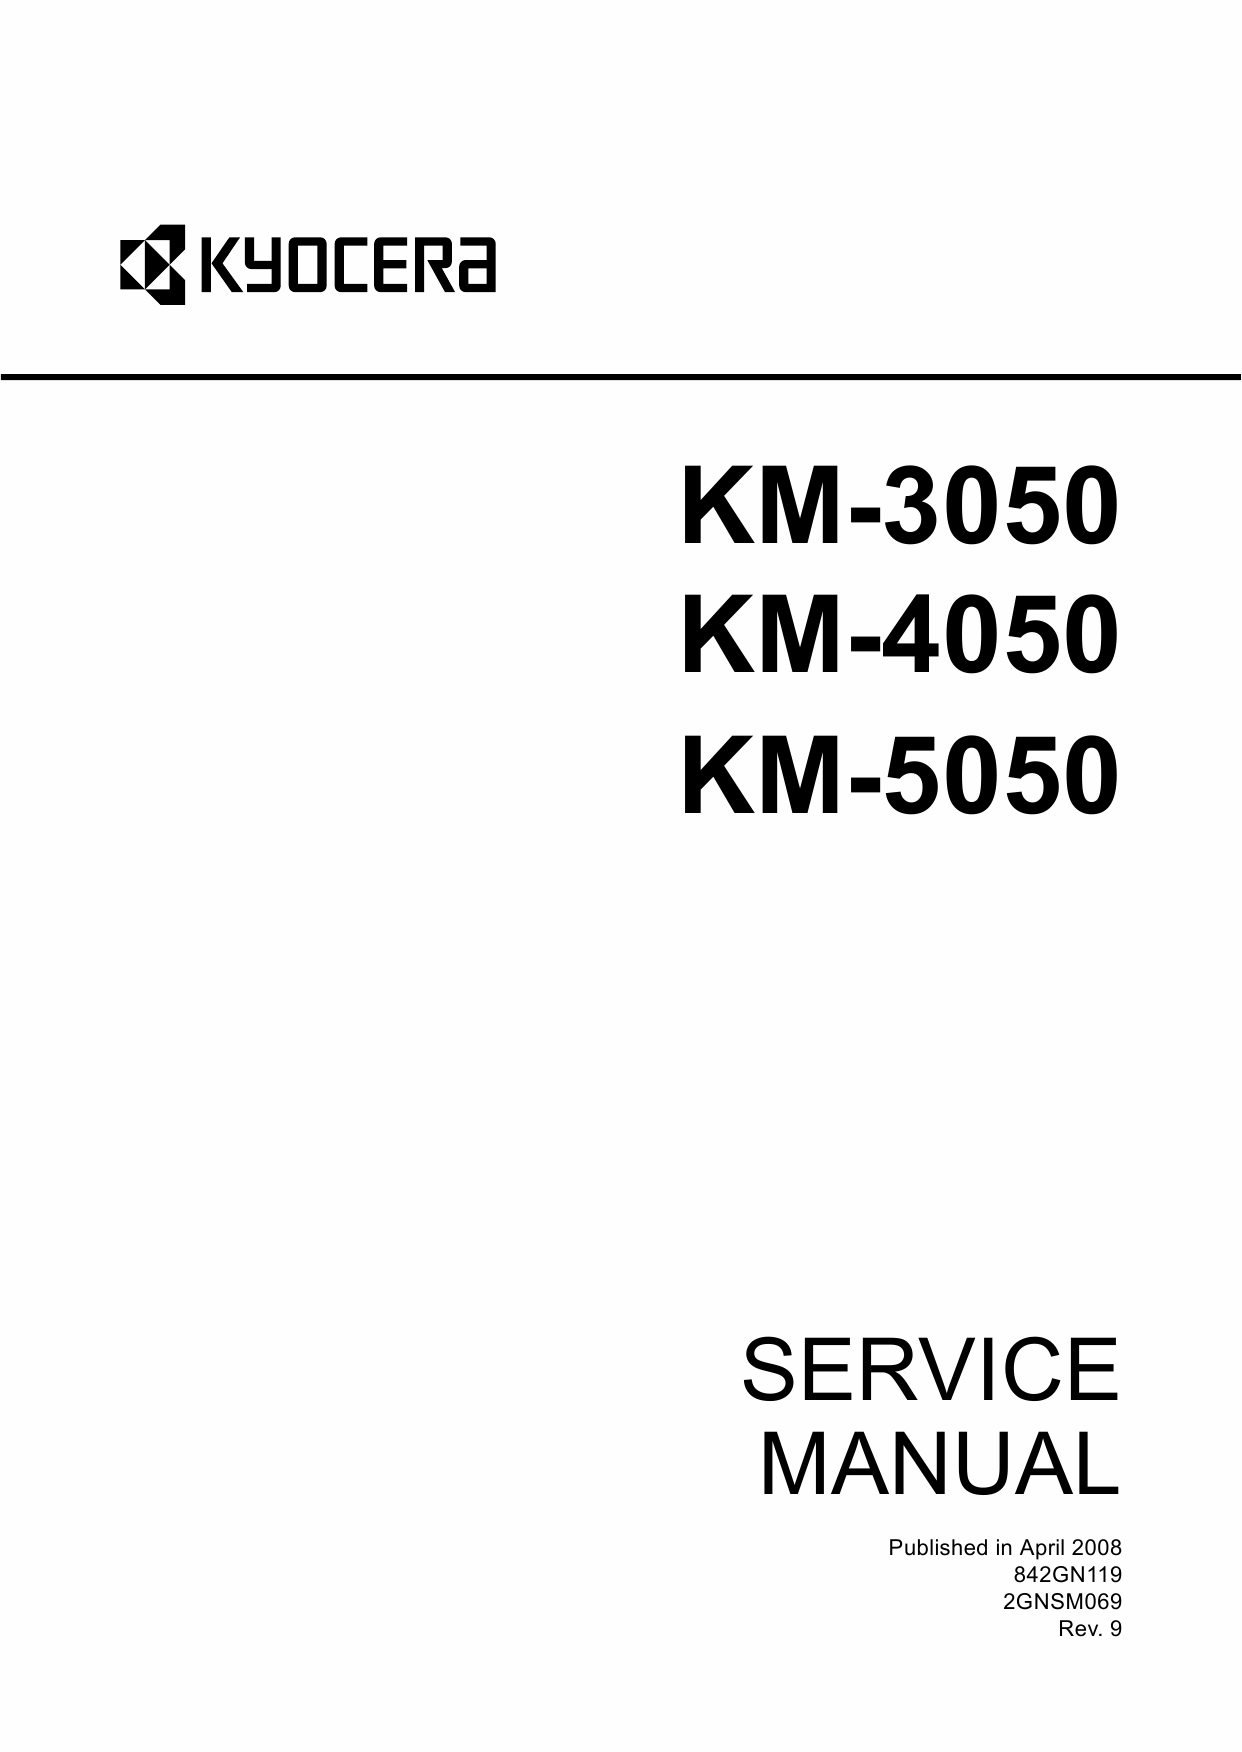 KYOCERA Copier KM-3050 4050 5050 Service Manual-1